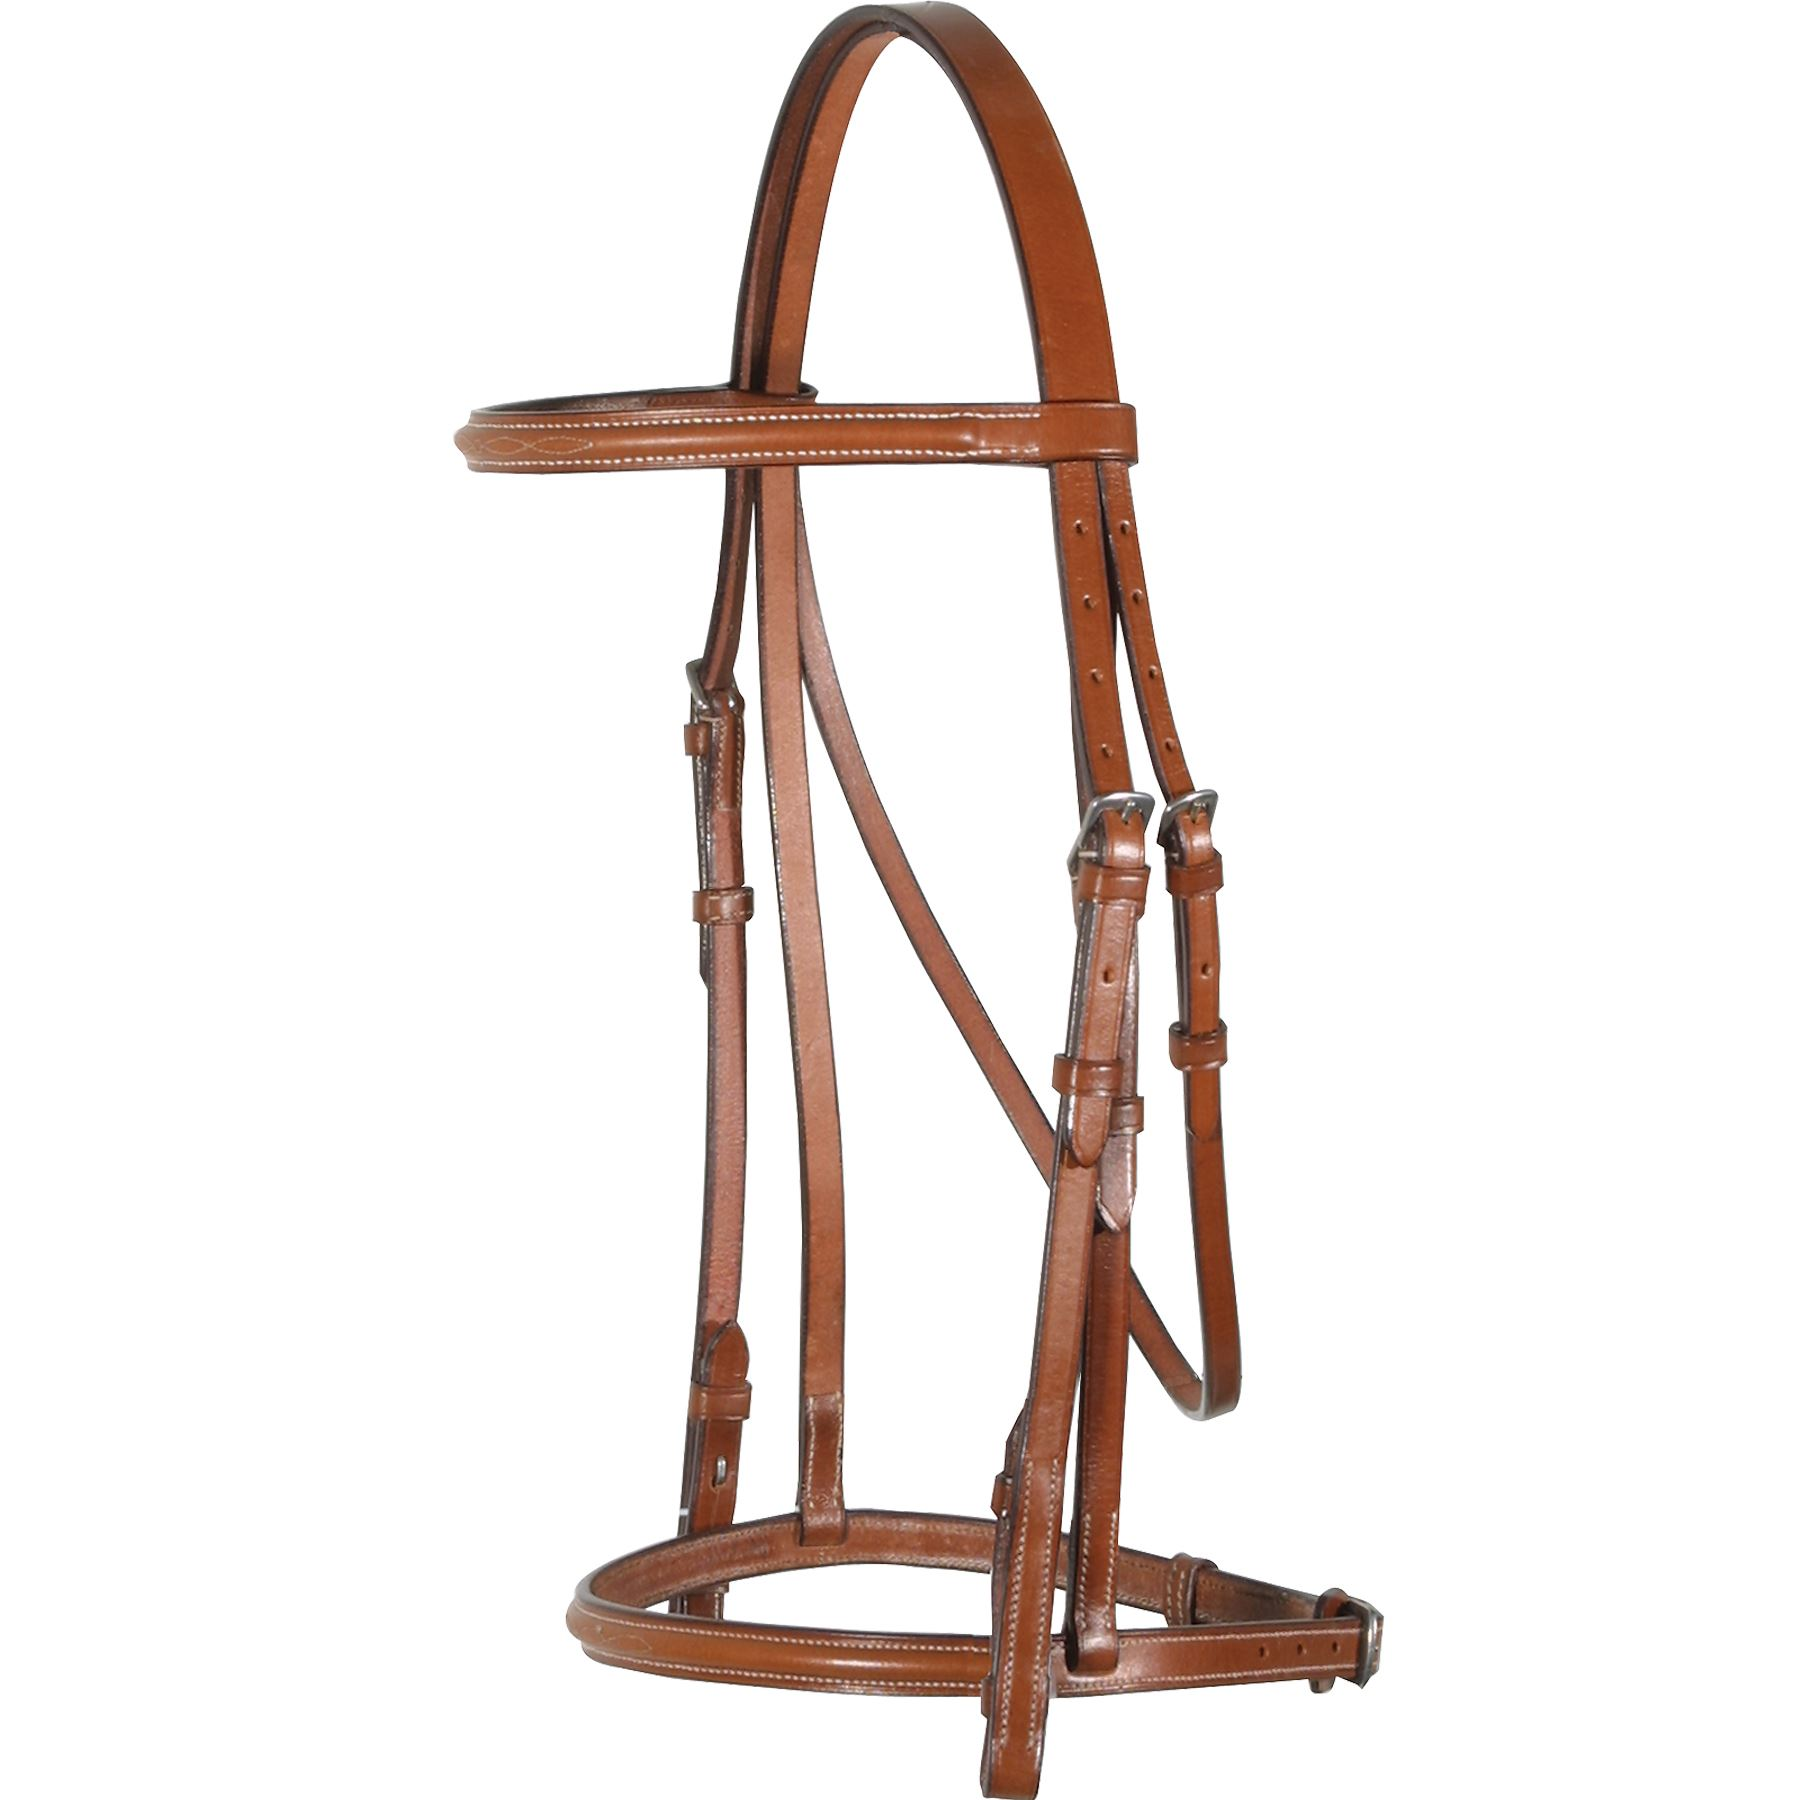 Pinnacle Kirkby Dorset Fancy Stitched Bridle In Specials At Schneider Saddlery